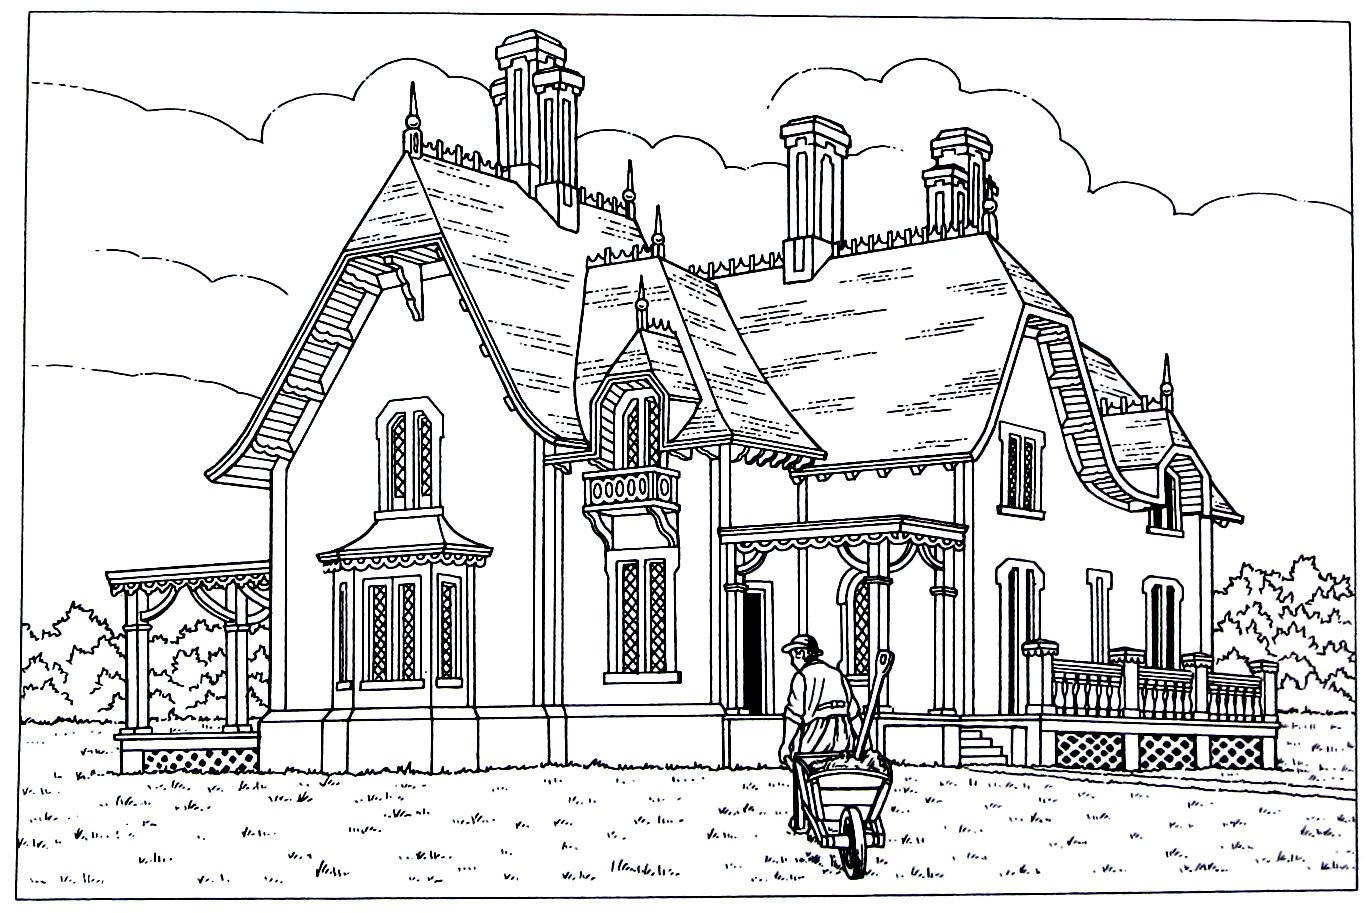 Victorian House printable coloring book page. Style is a